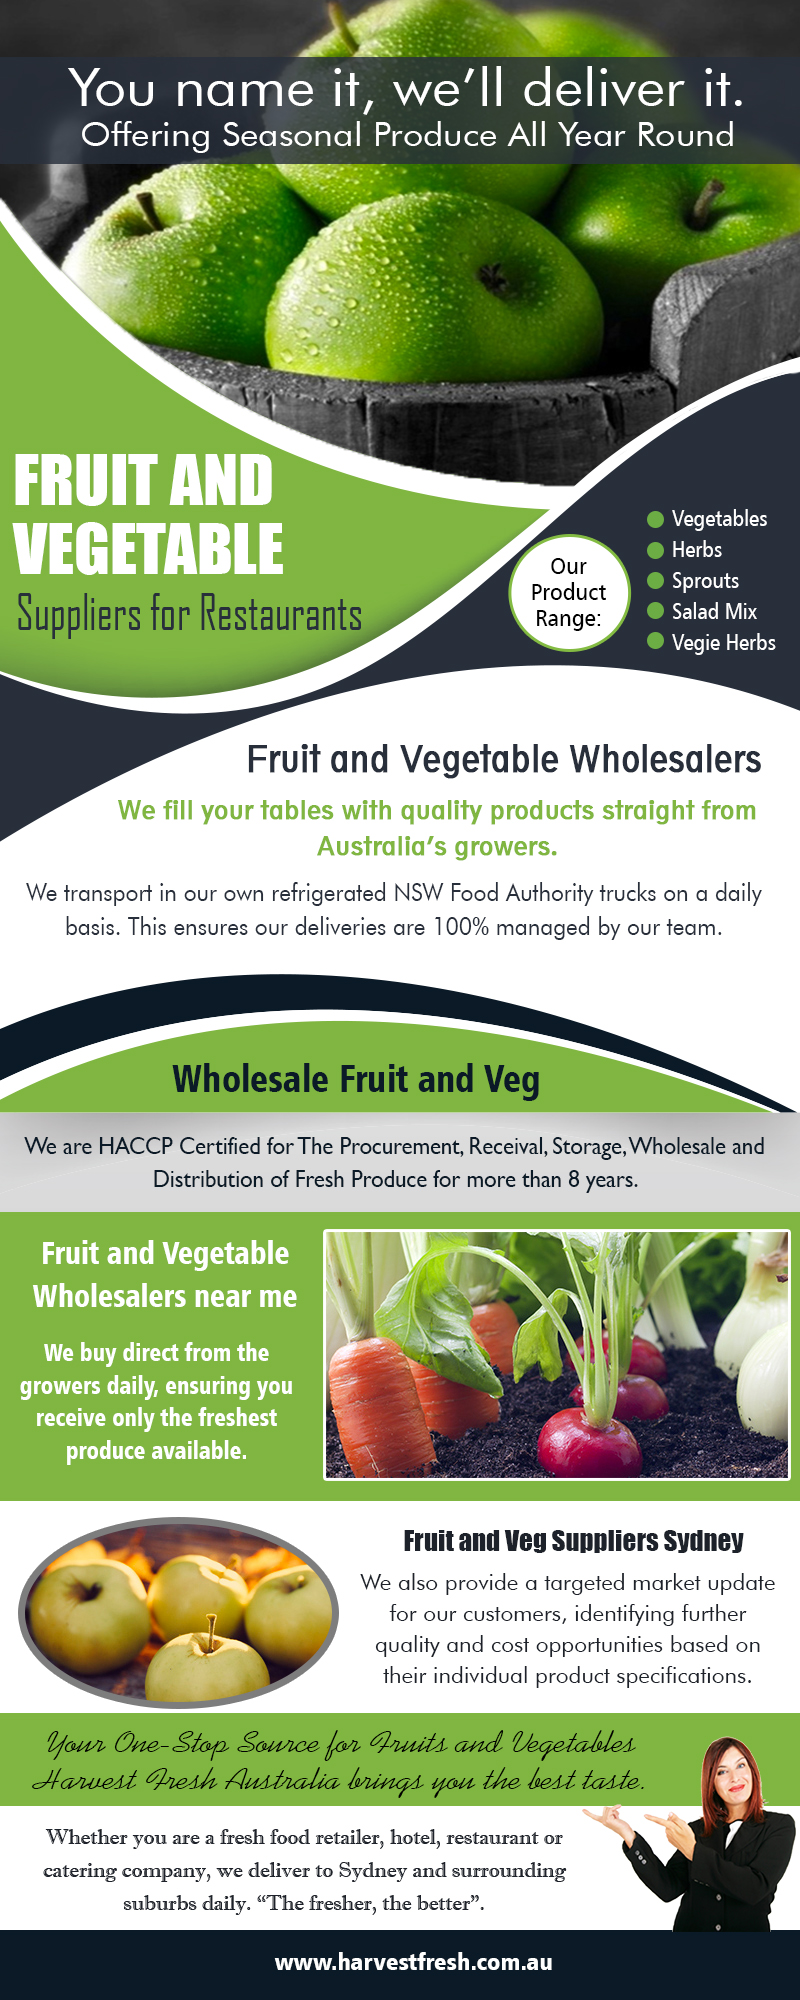 Fruit and Vegetable Suppliers for Restaurants AU